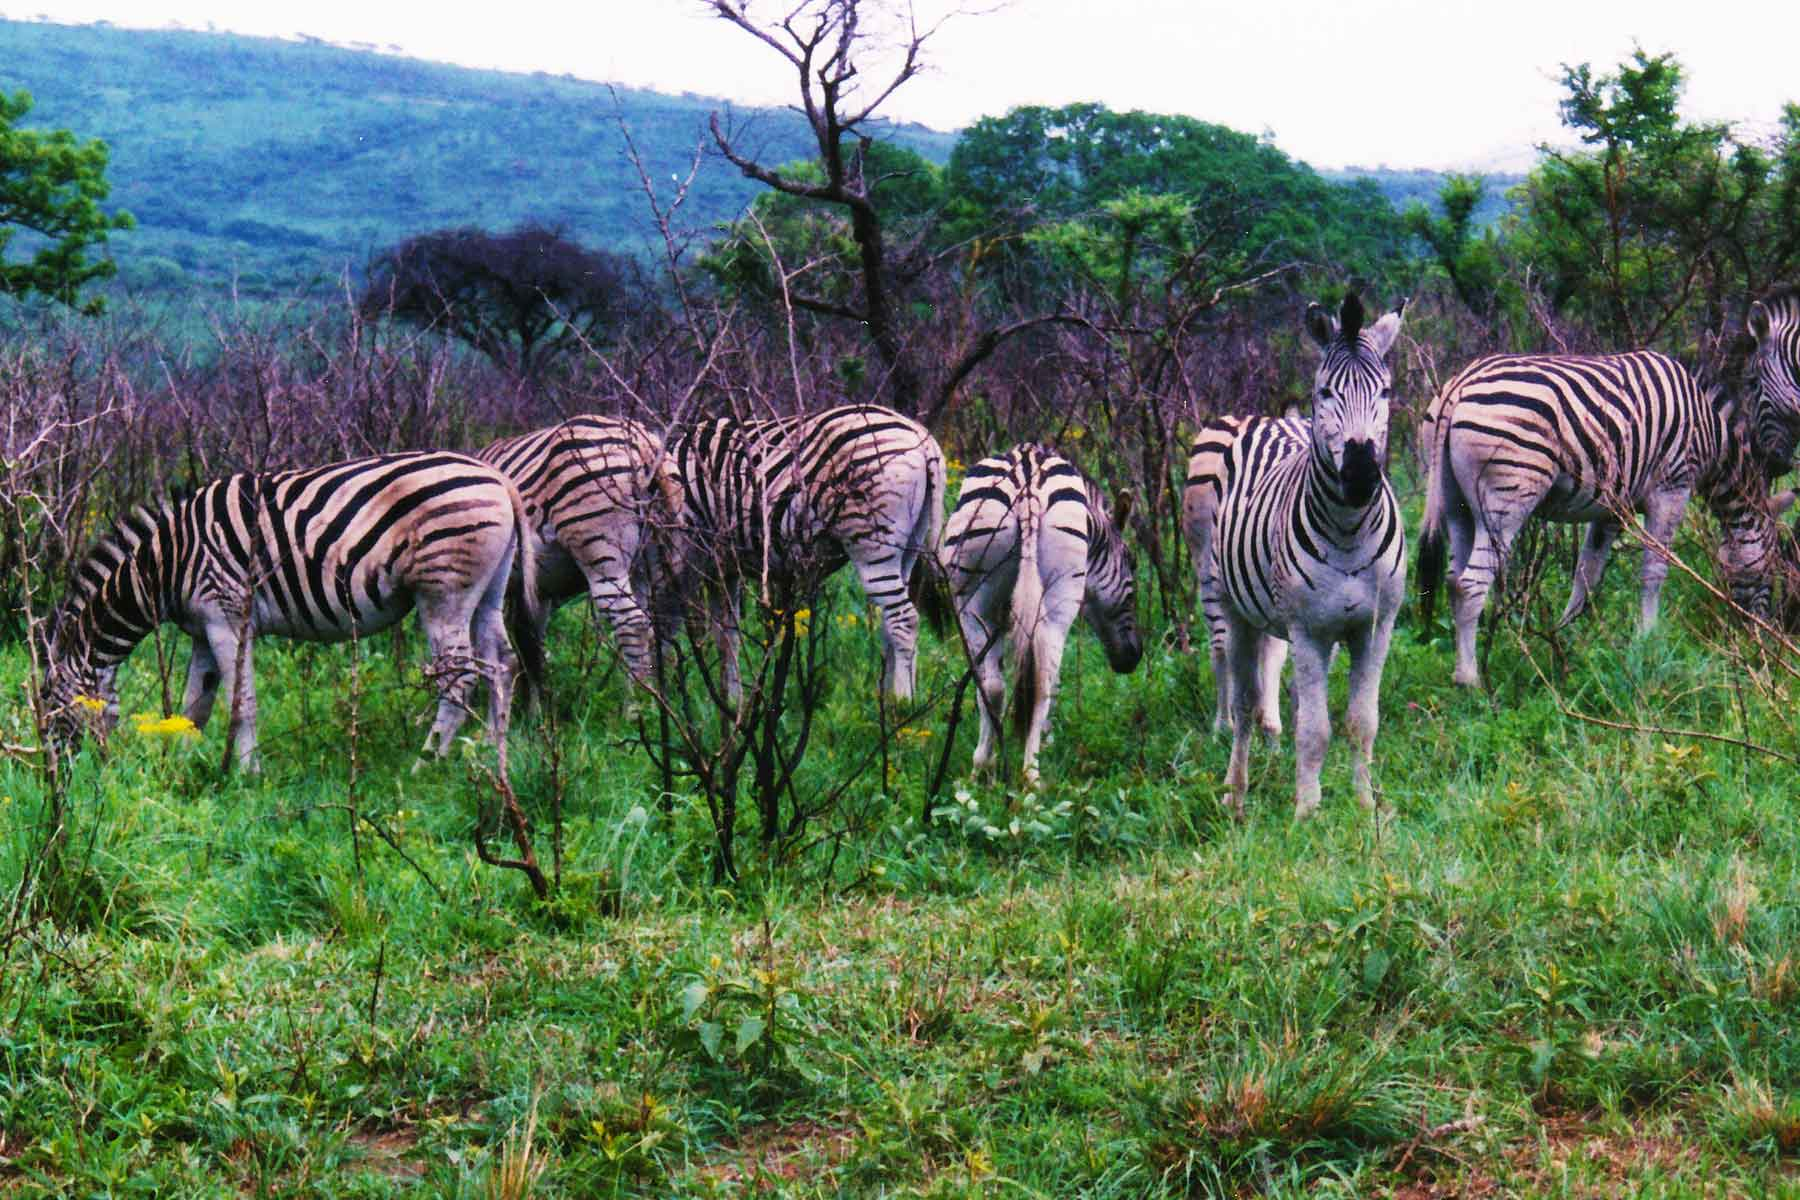 Zebras - Hluhluwe-Umfolozi Game Reserve - Steven Andrew Martin - South Africa Photo Journal - International education online